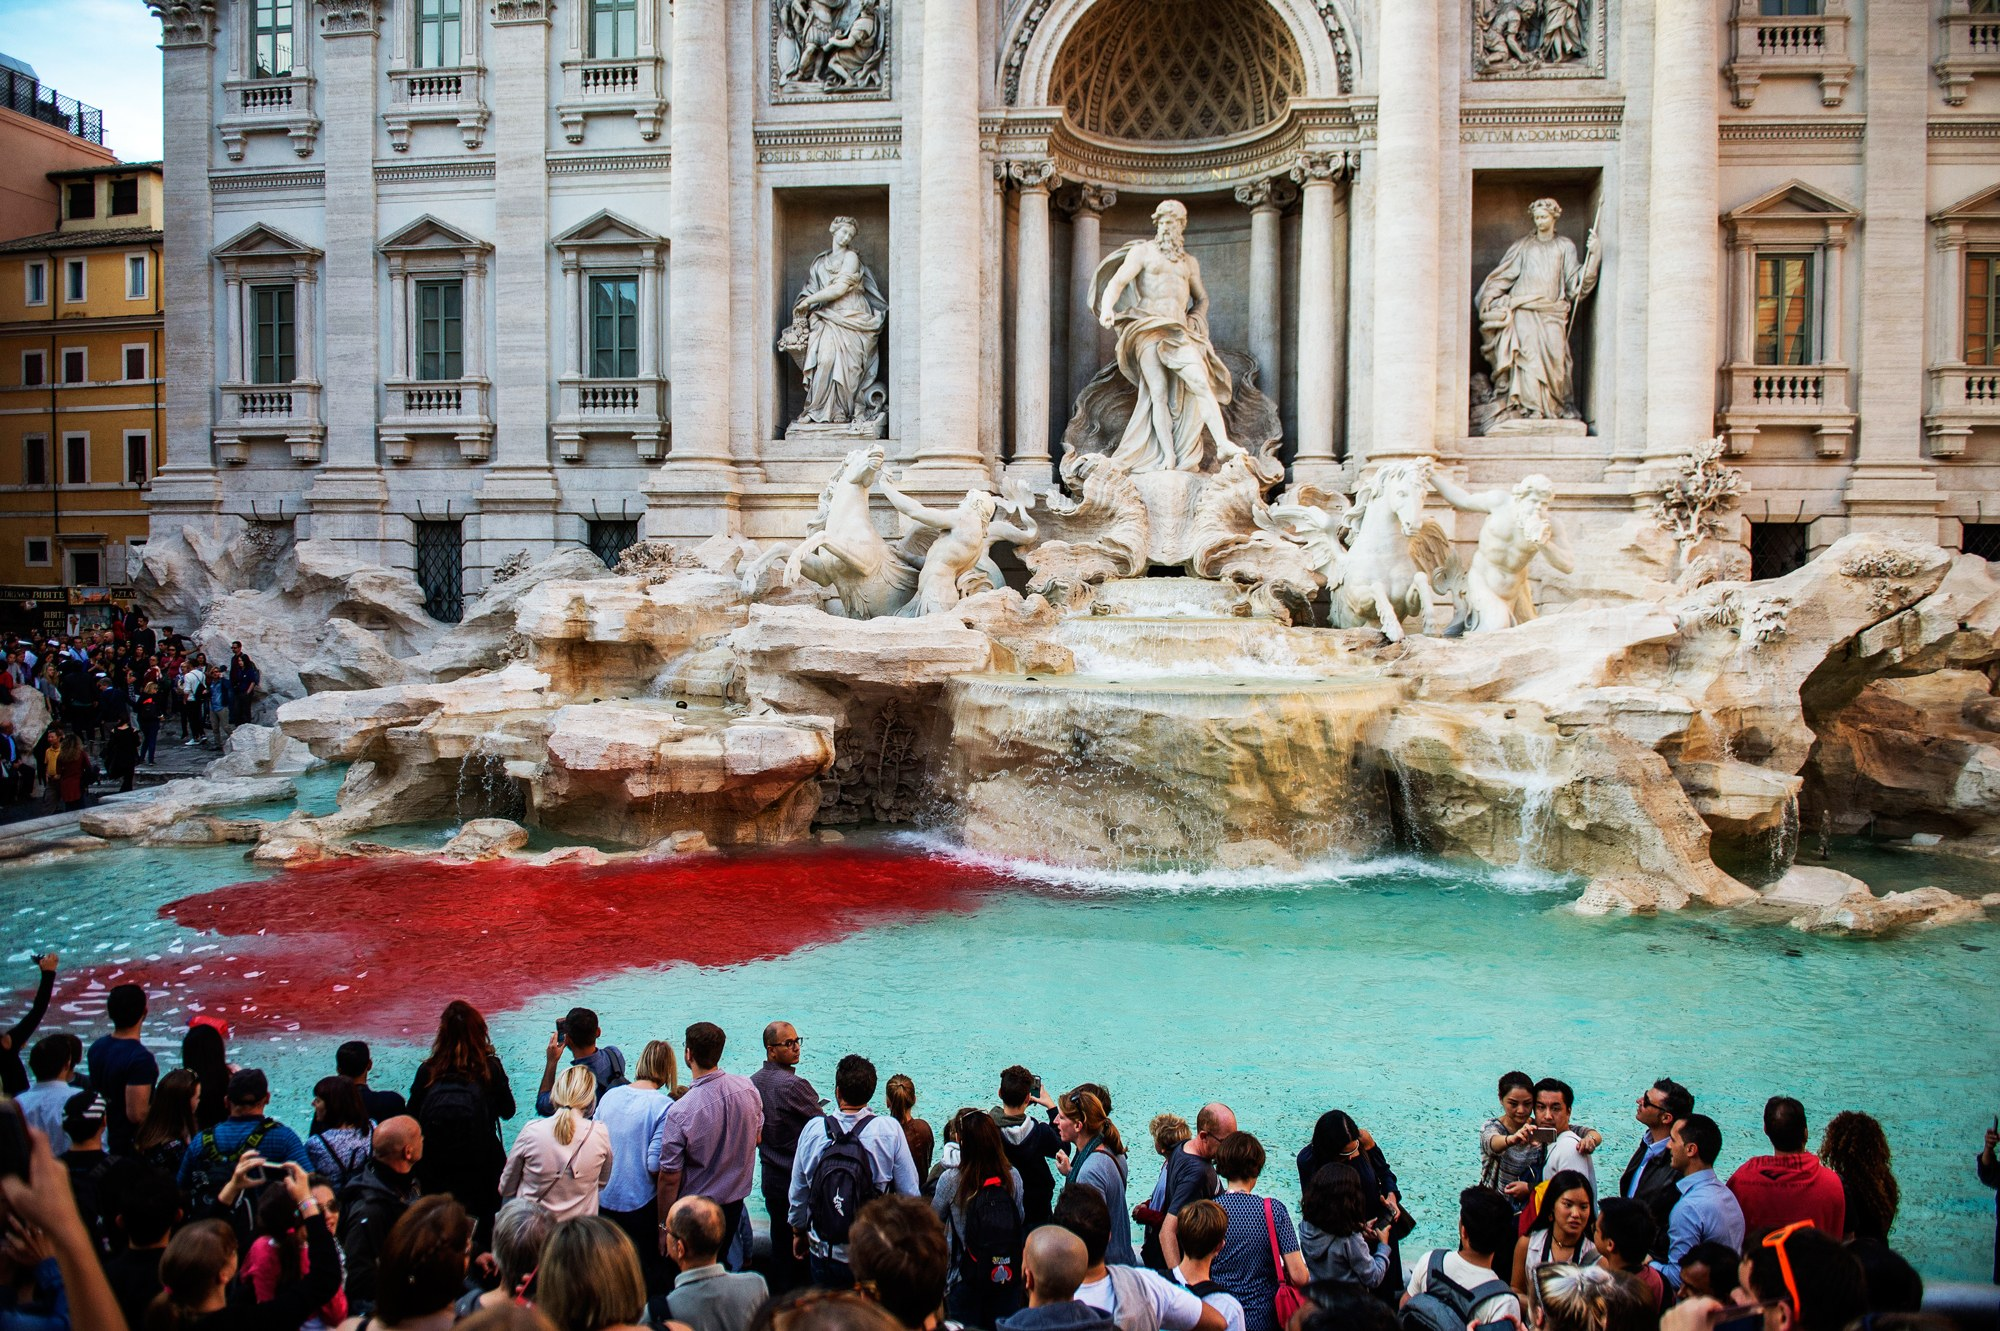 Trevi Fountain Turns Red Once Again